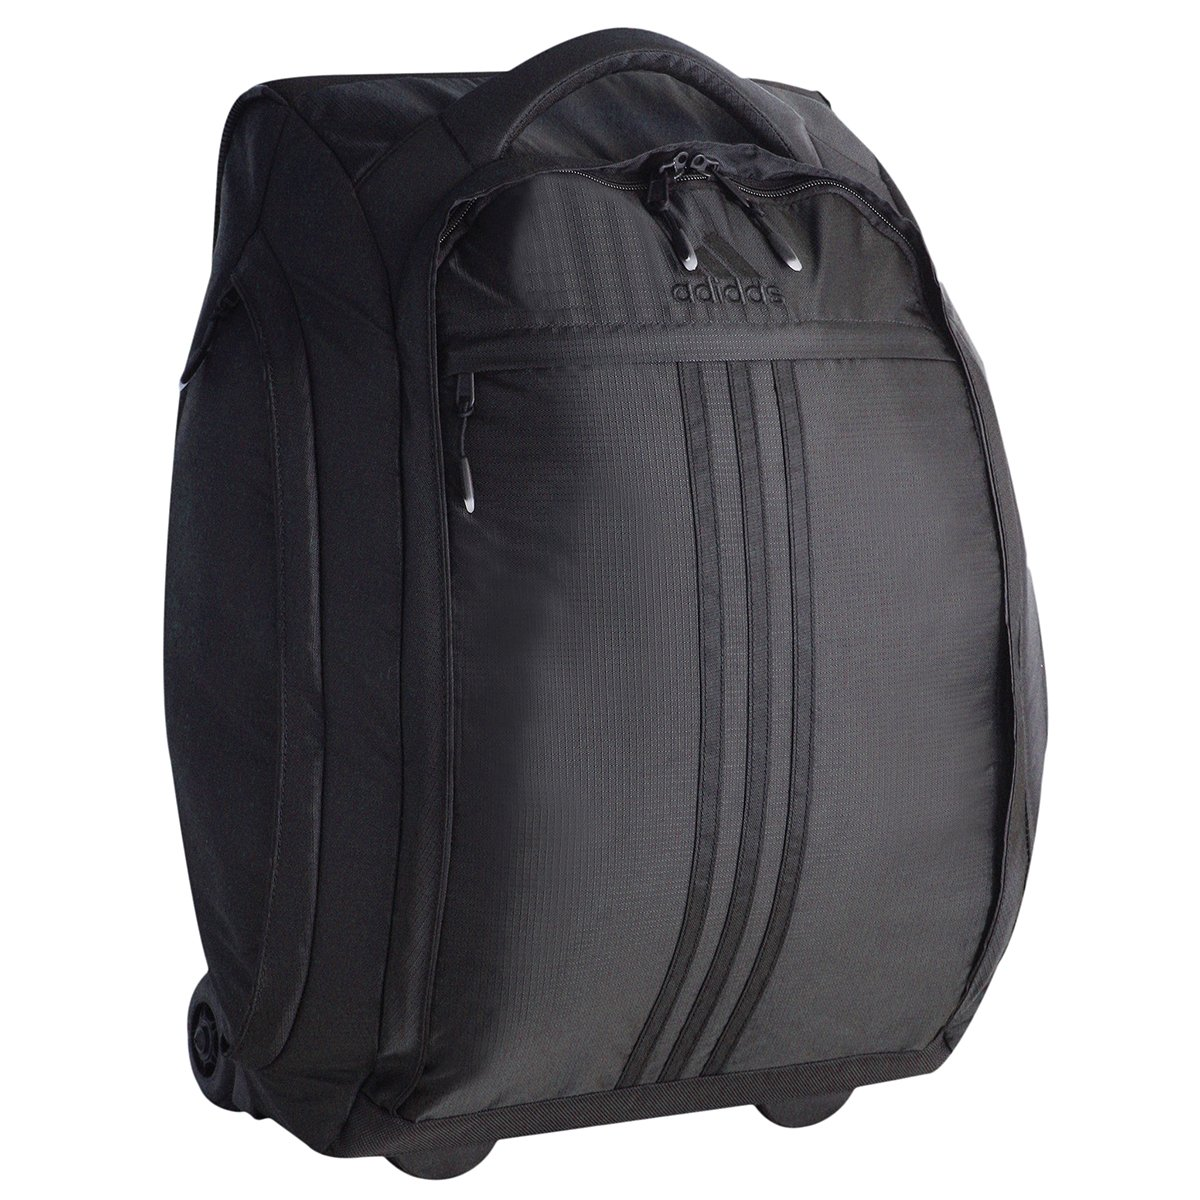 adidas Duel 21-Inch Wheel Bag, Black, One Size by adidas